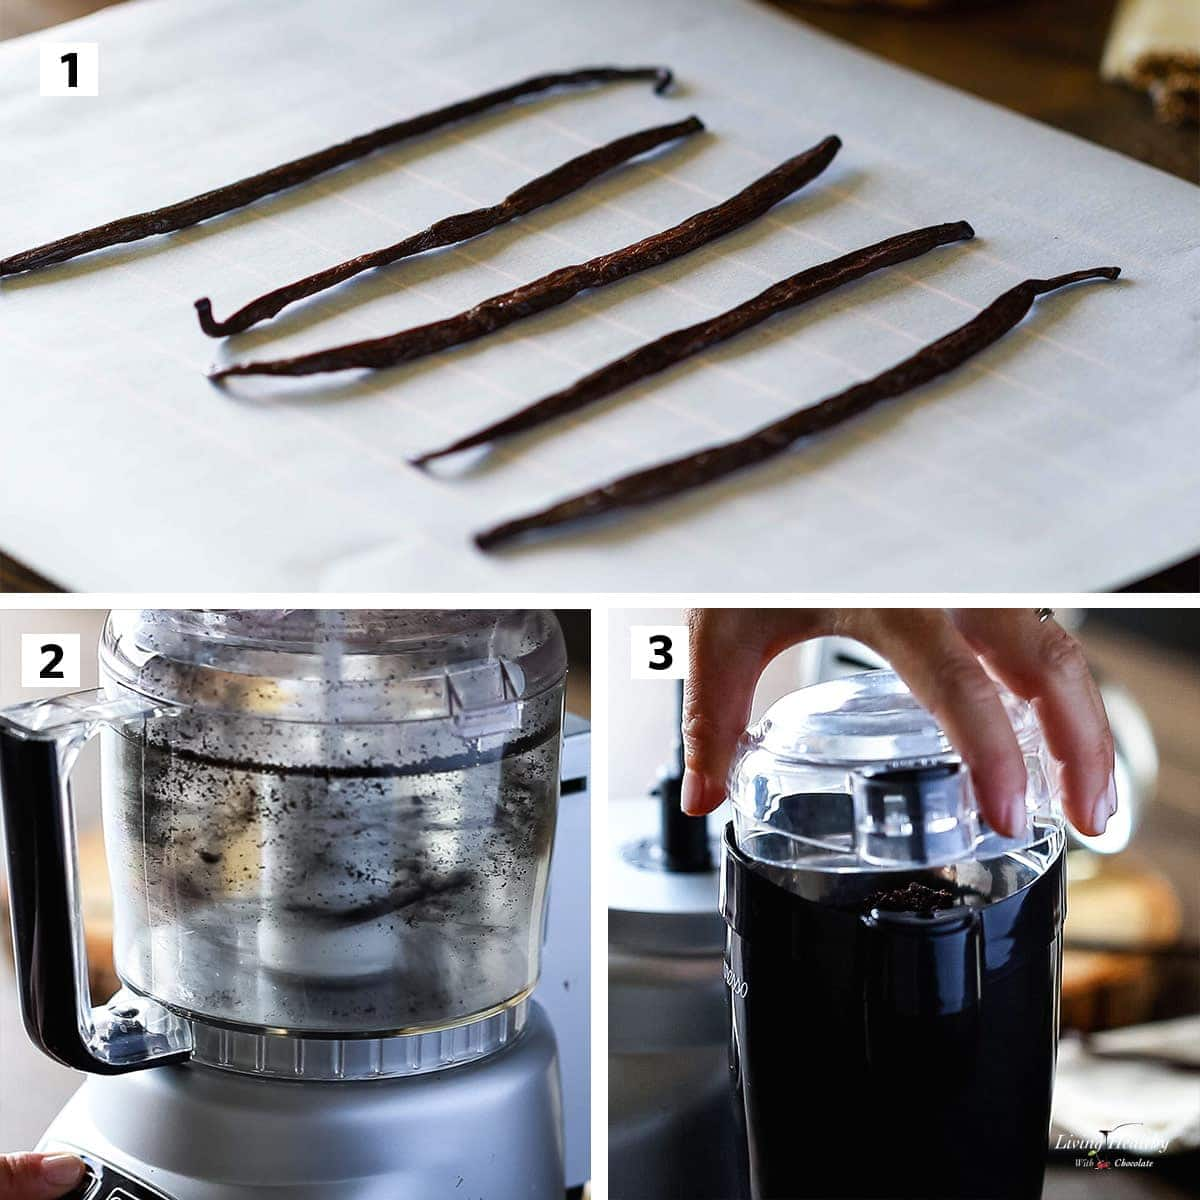 3 steps collage showing how to make vanilla powder in food processor and coffee grinder